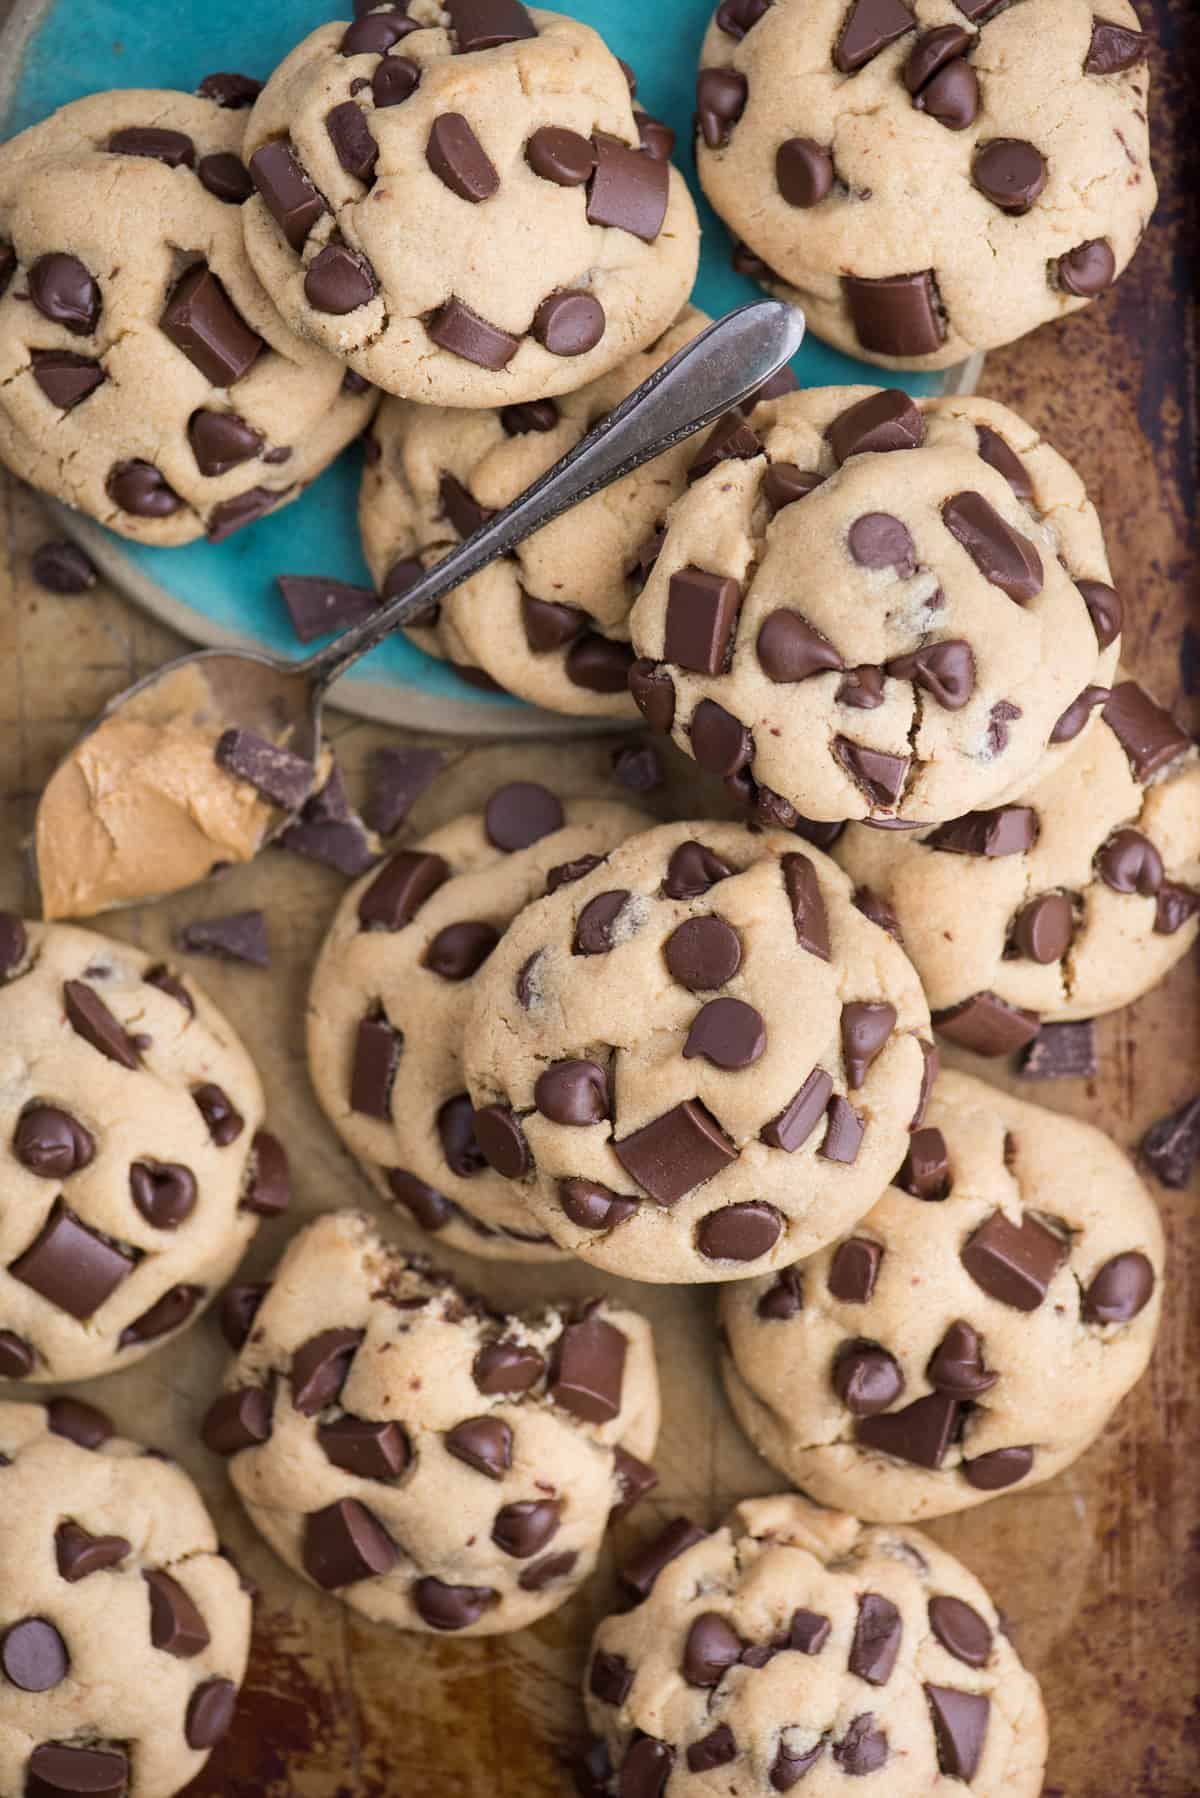 peanut butter chocolate chip cookies on a brown metal cookie sheet